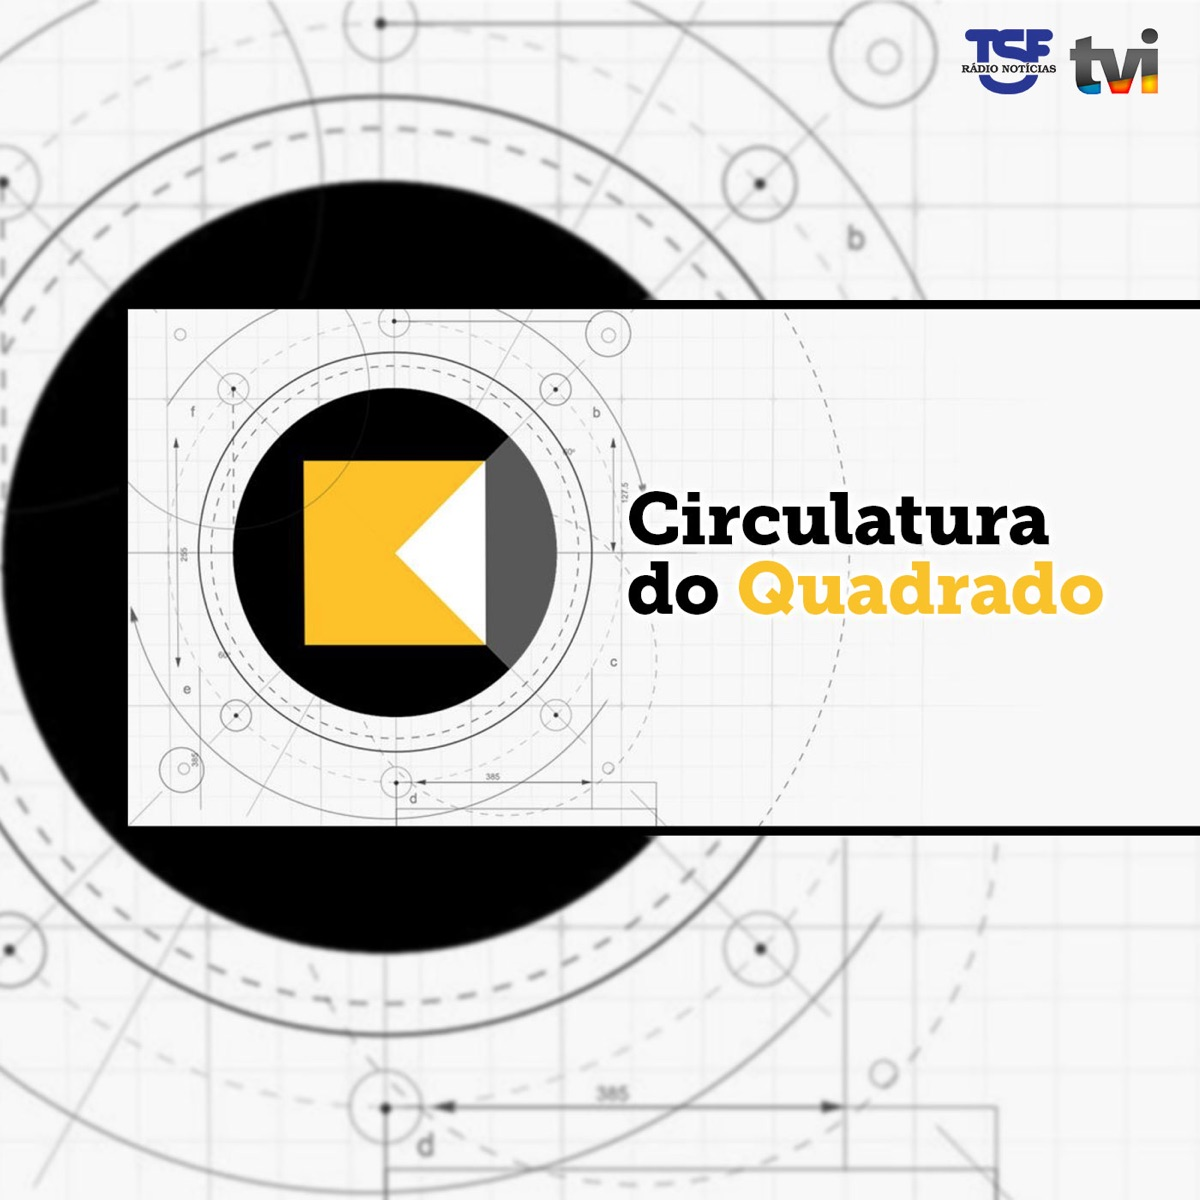 Circulatura do Quadrado - 08 de Abril 2020